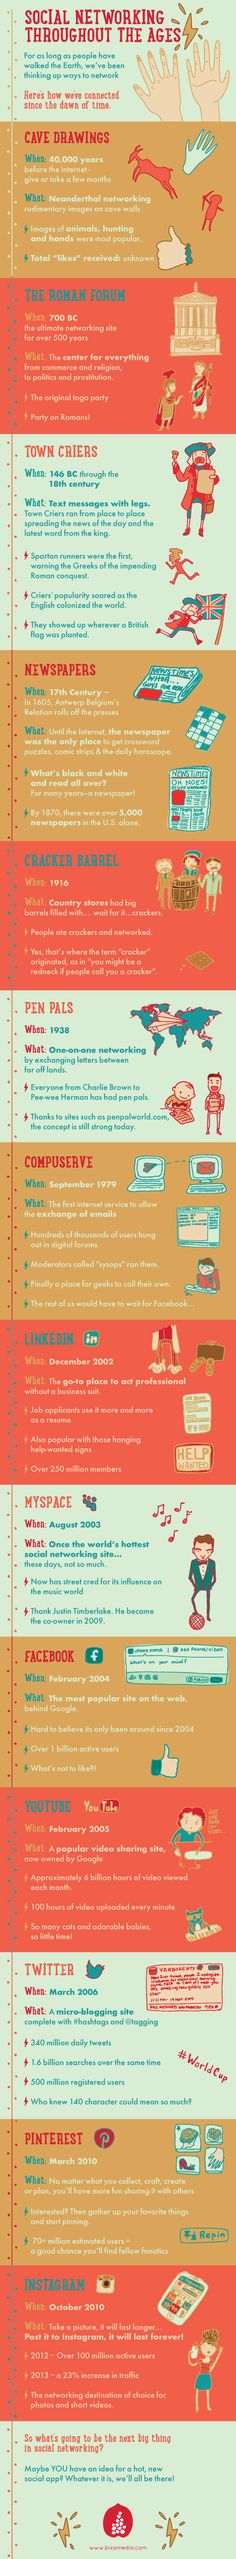 The History Of Social Networking Through The Ages [#INFOGRAPHIC] #socialmedia